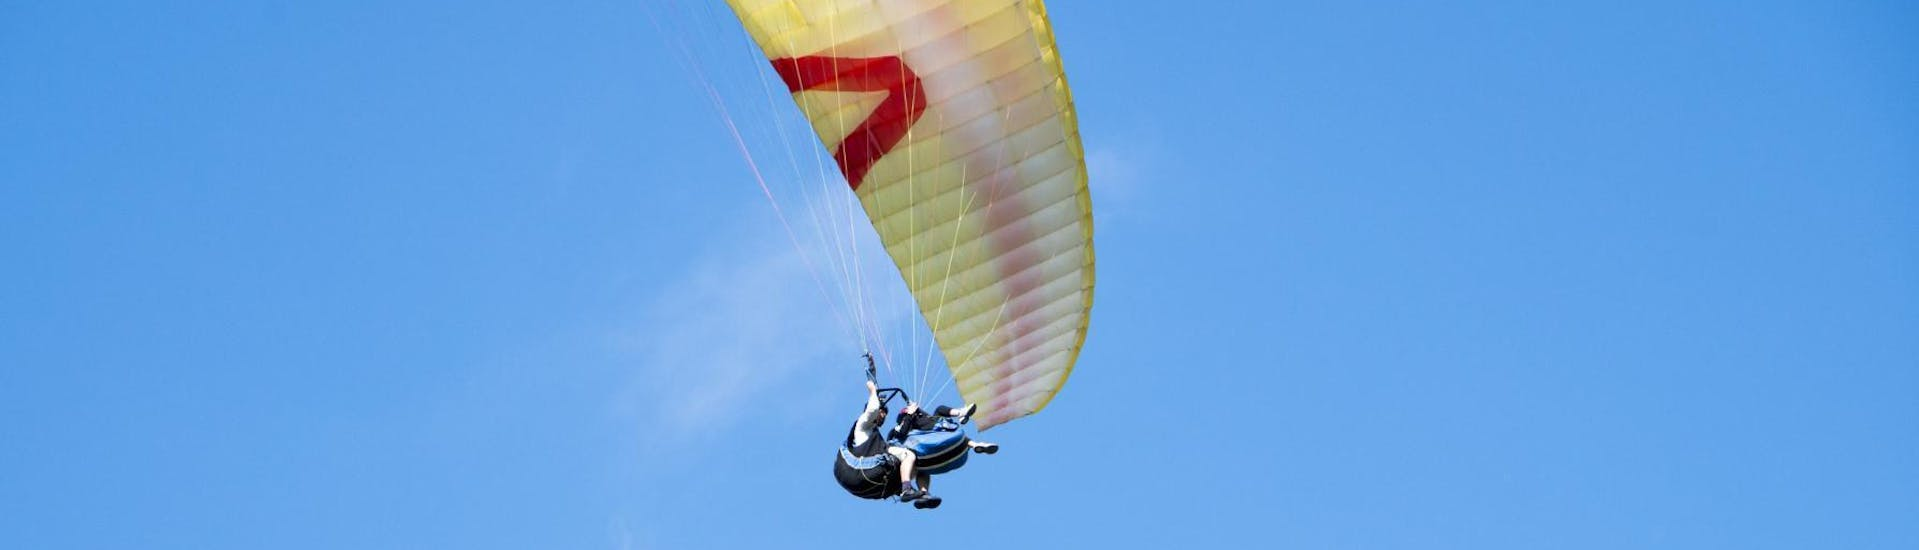 tandem-paragliding-in-the-sava-hills-sky-riders-paragliding-croatia-hero